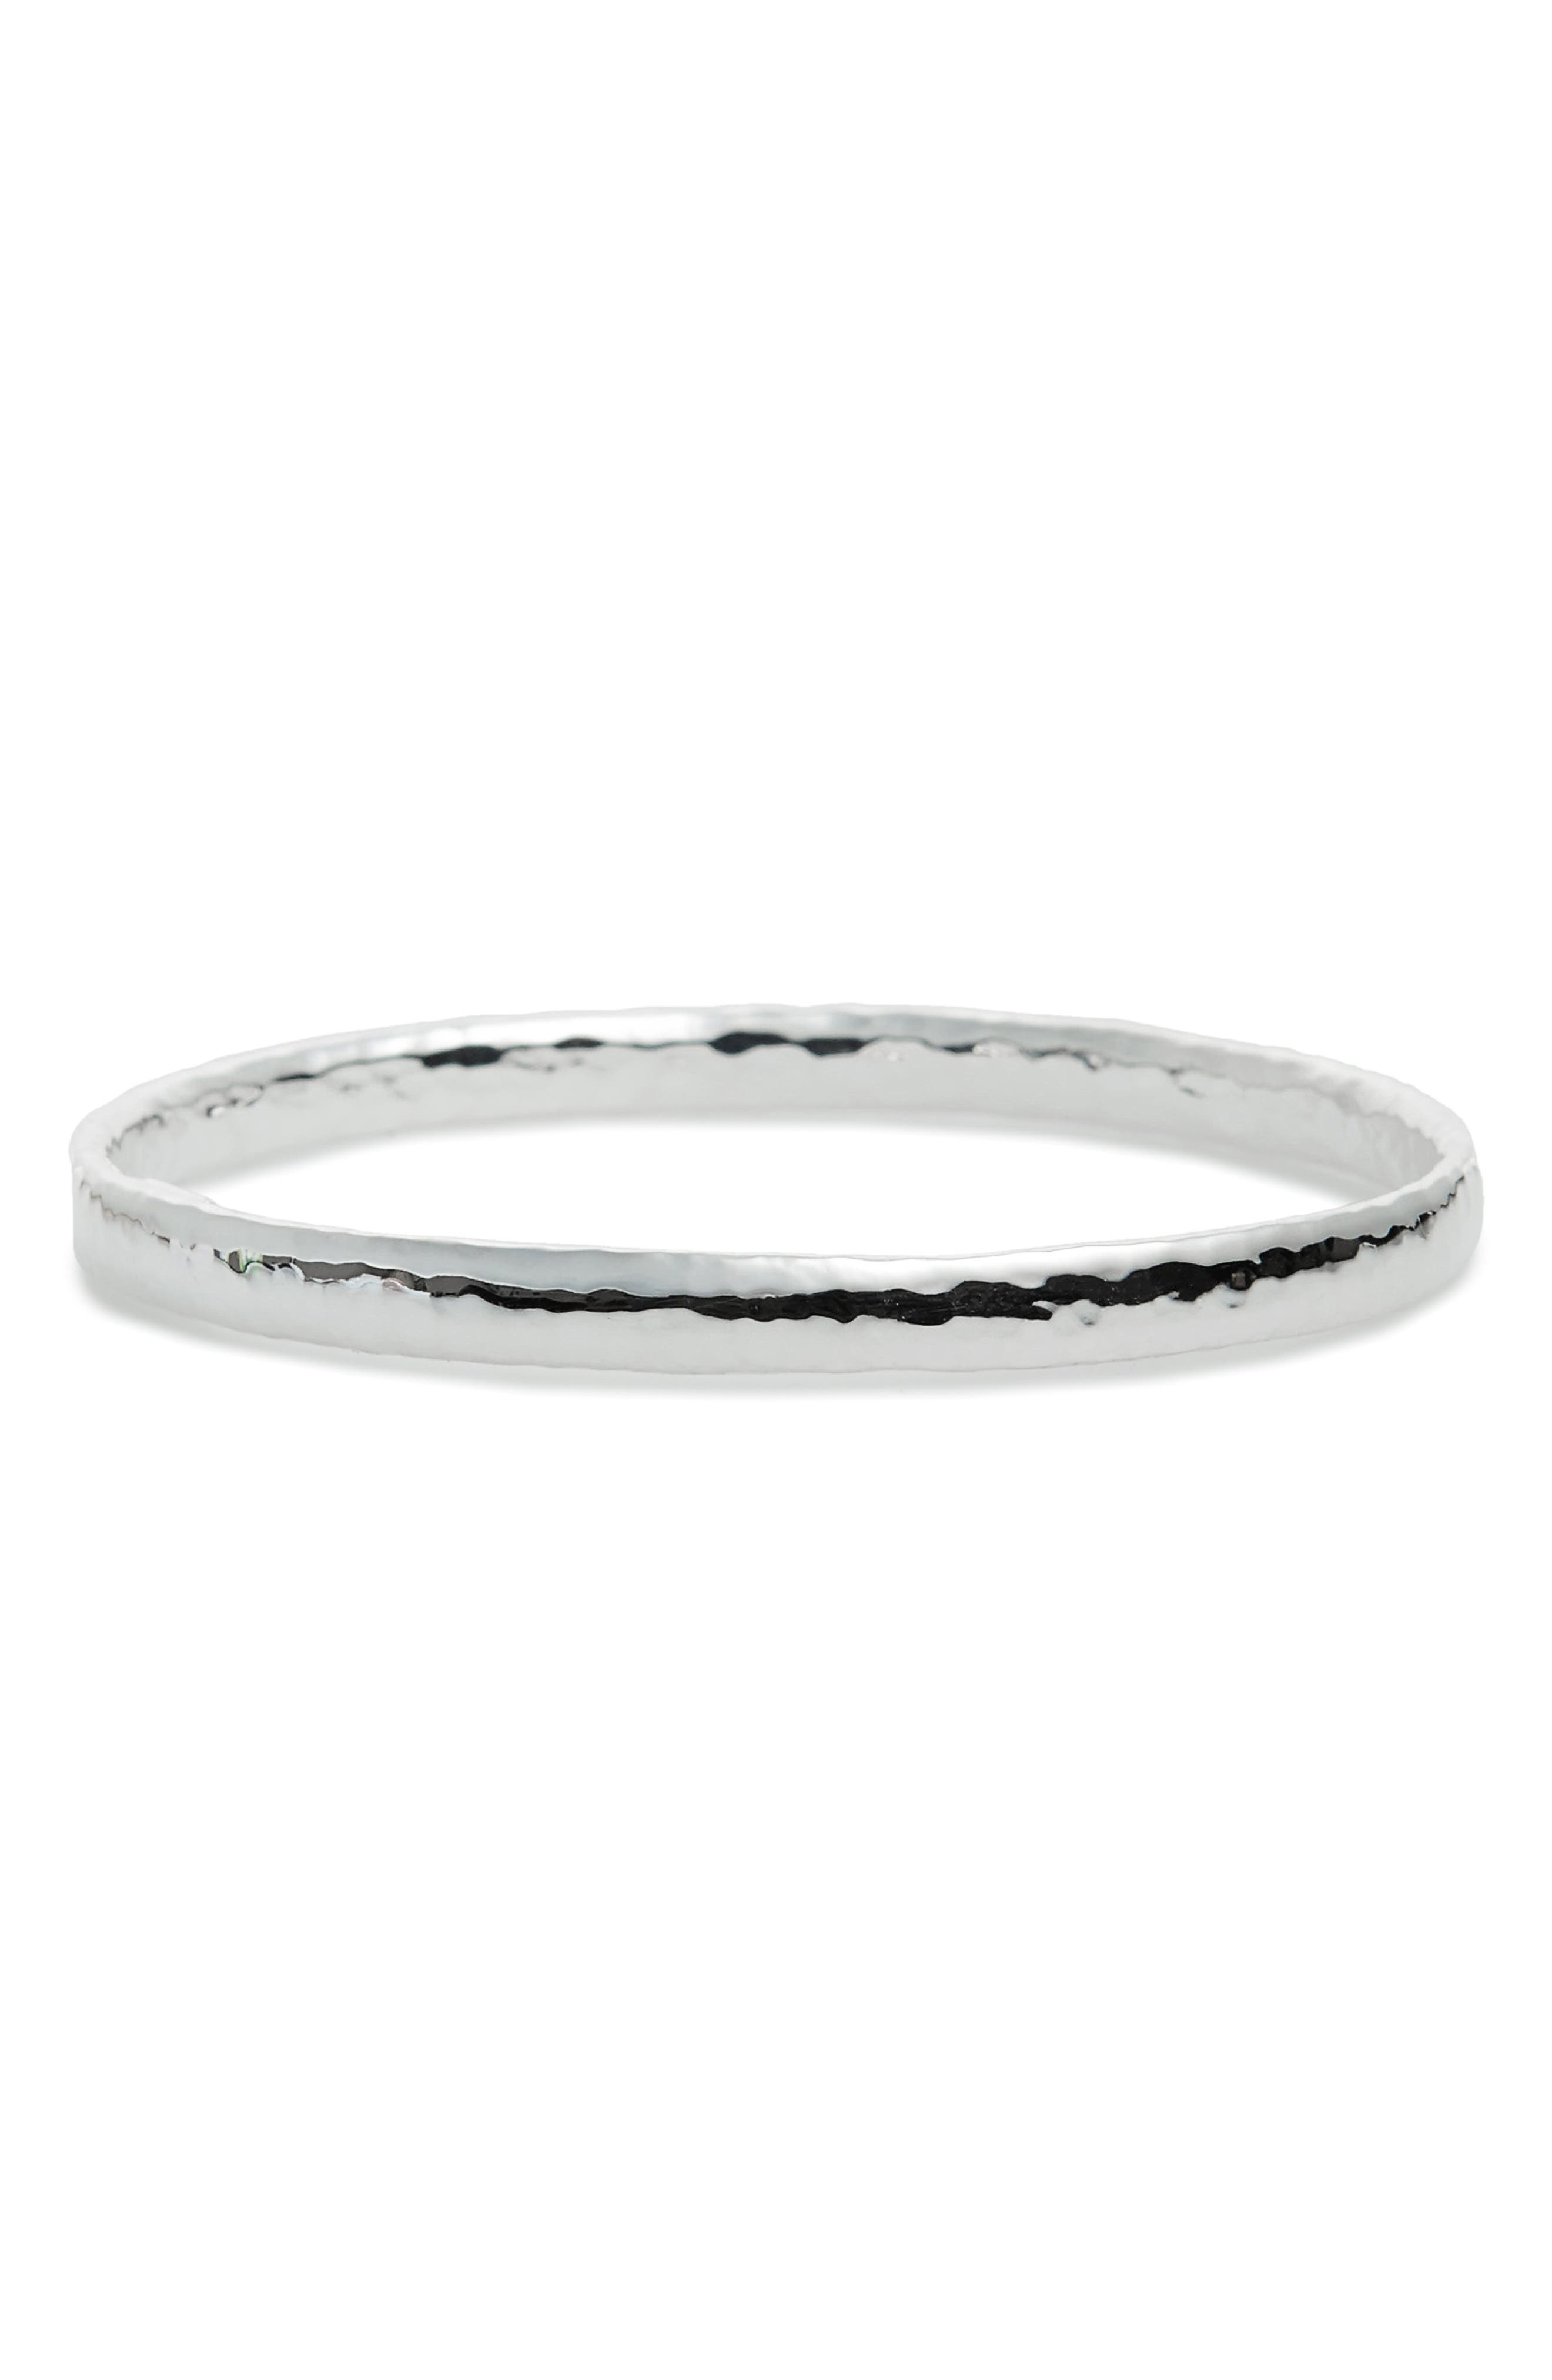 Ippolita 'Glamazon' Sterling Silver Bangle